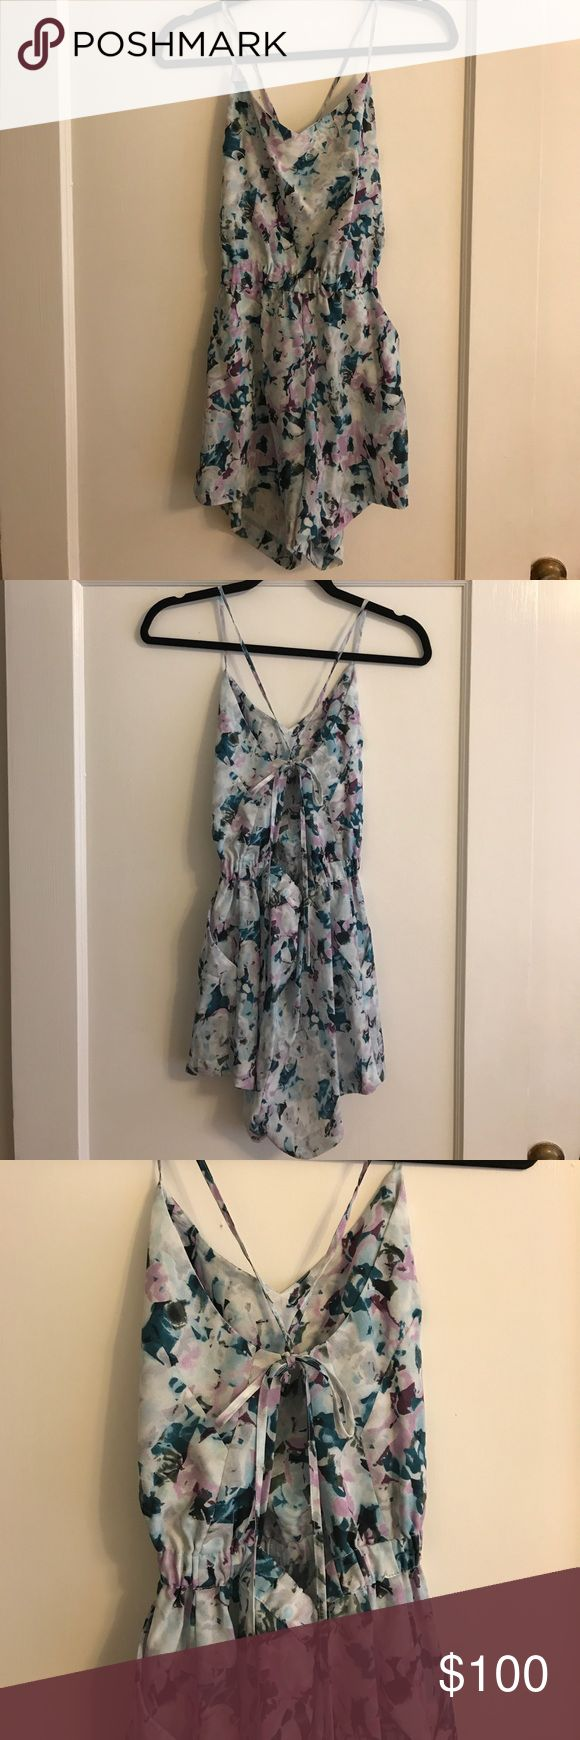 Parker NY Floral Romper Multi Floral romper with back exposed and tie back strap, pockets Parker Other